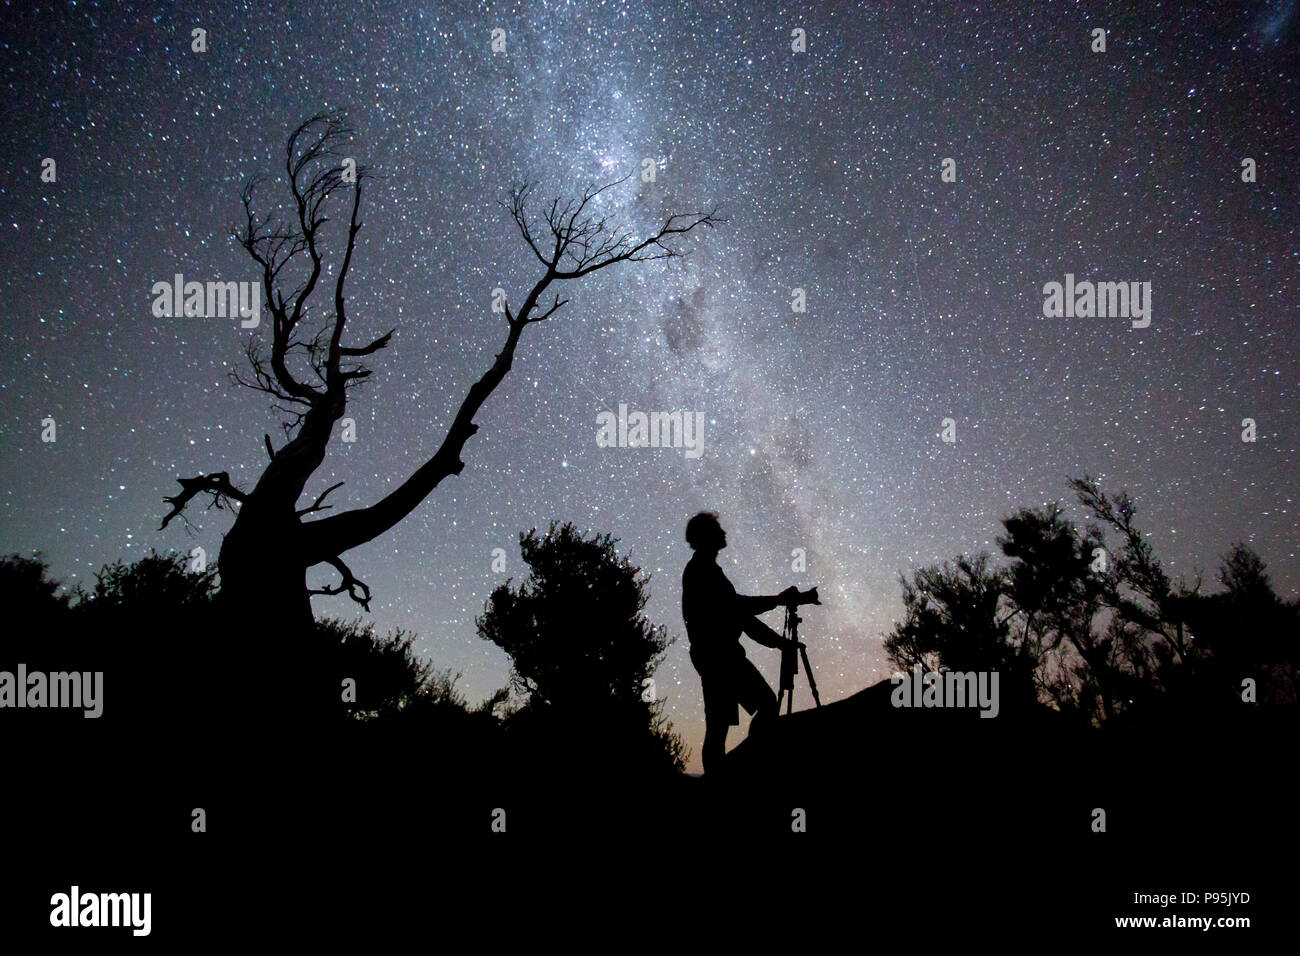 Man taking photographs under a starry night sky, New Zealand - Stock Image